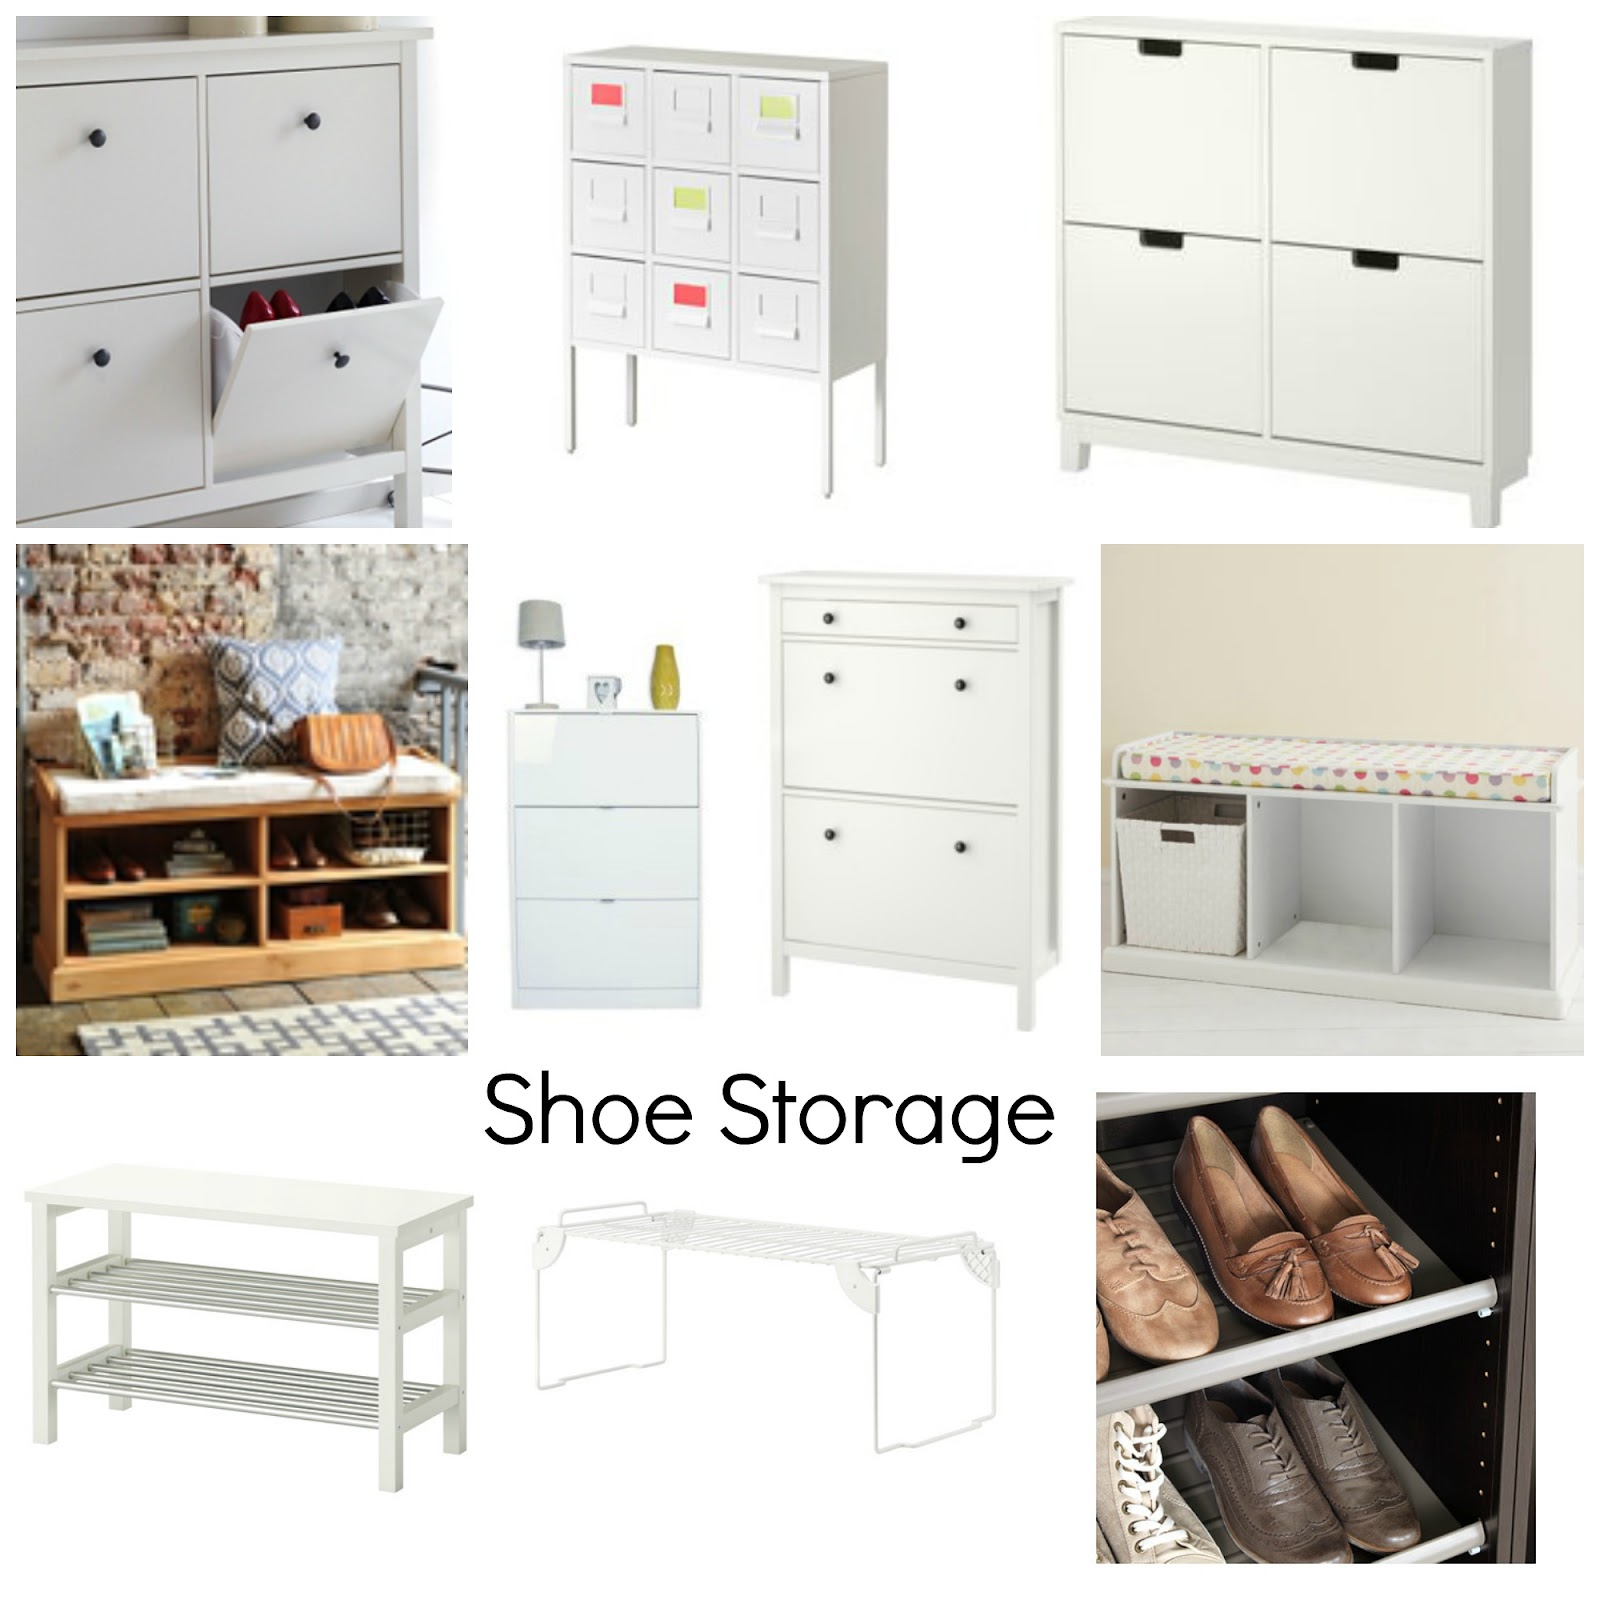 Examples of Shoe Storage Cabinets